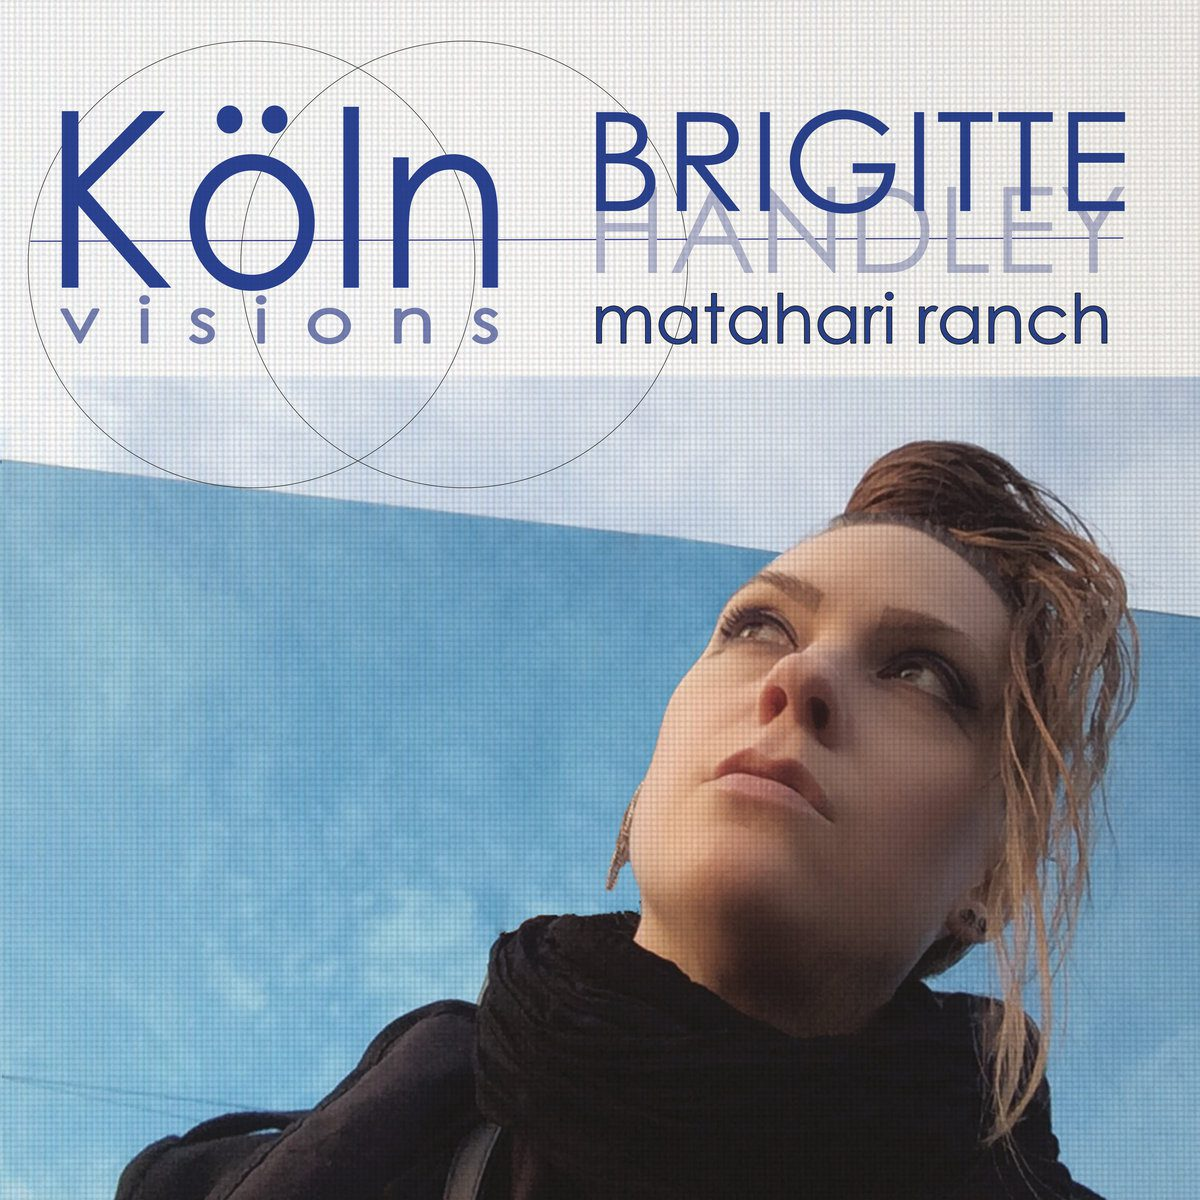 Out now is the new vinyl EP by Brigitte Handley, 'Köln Visions'